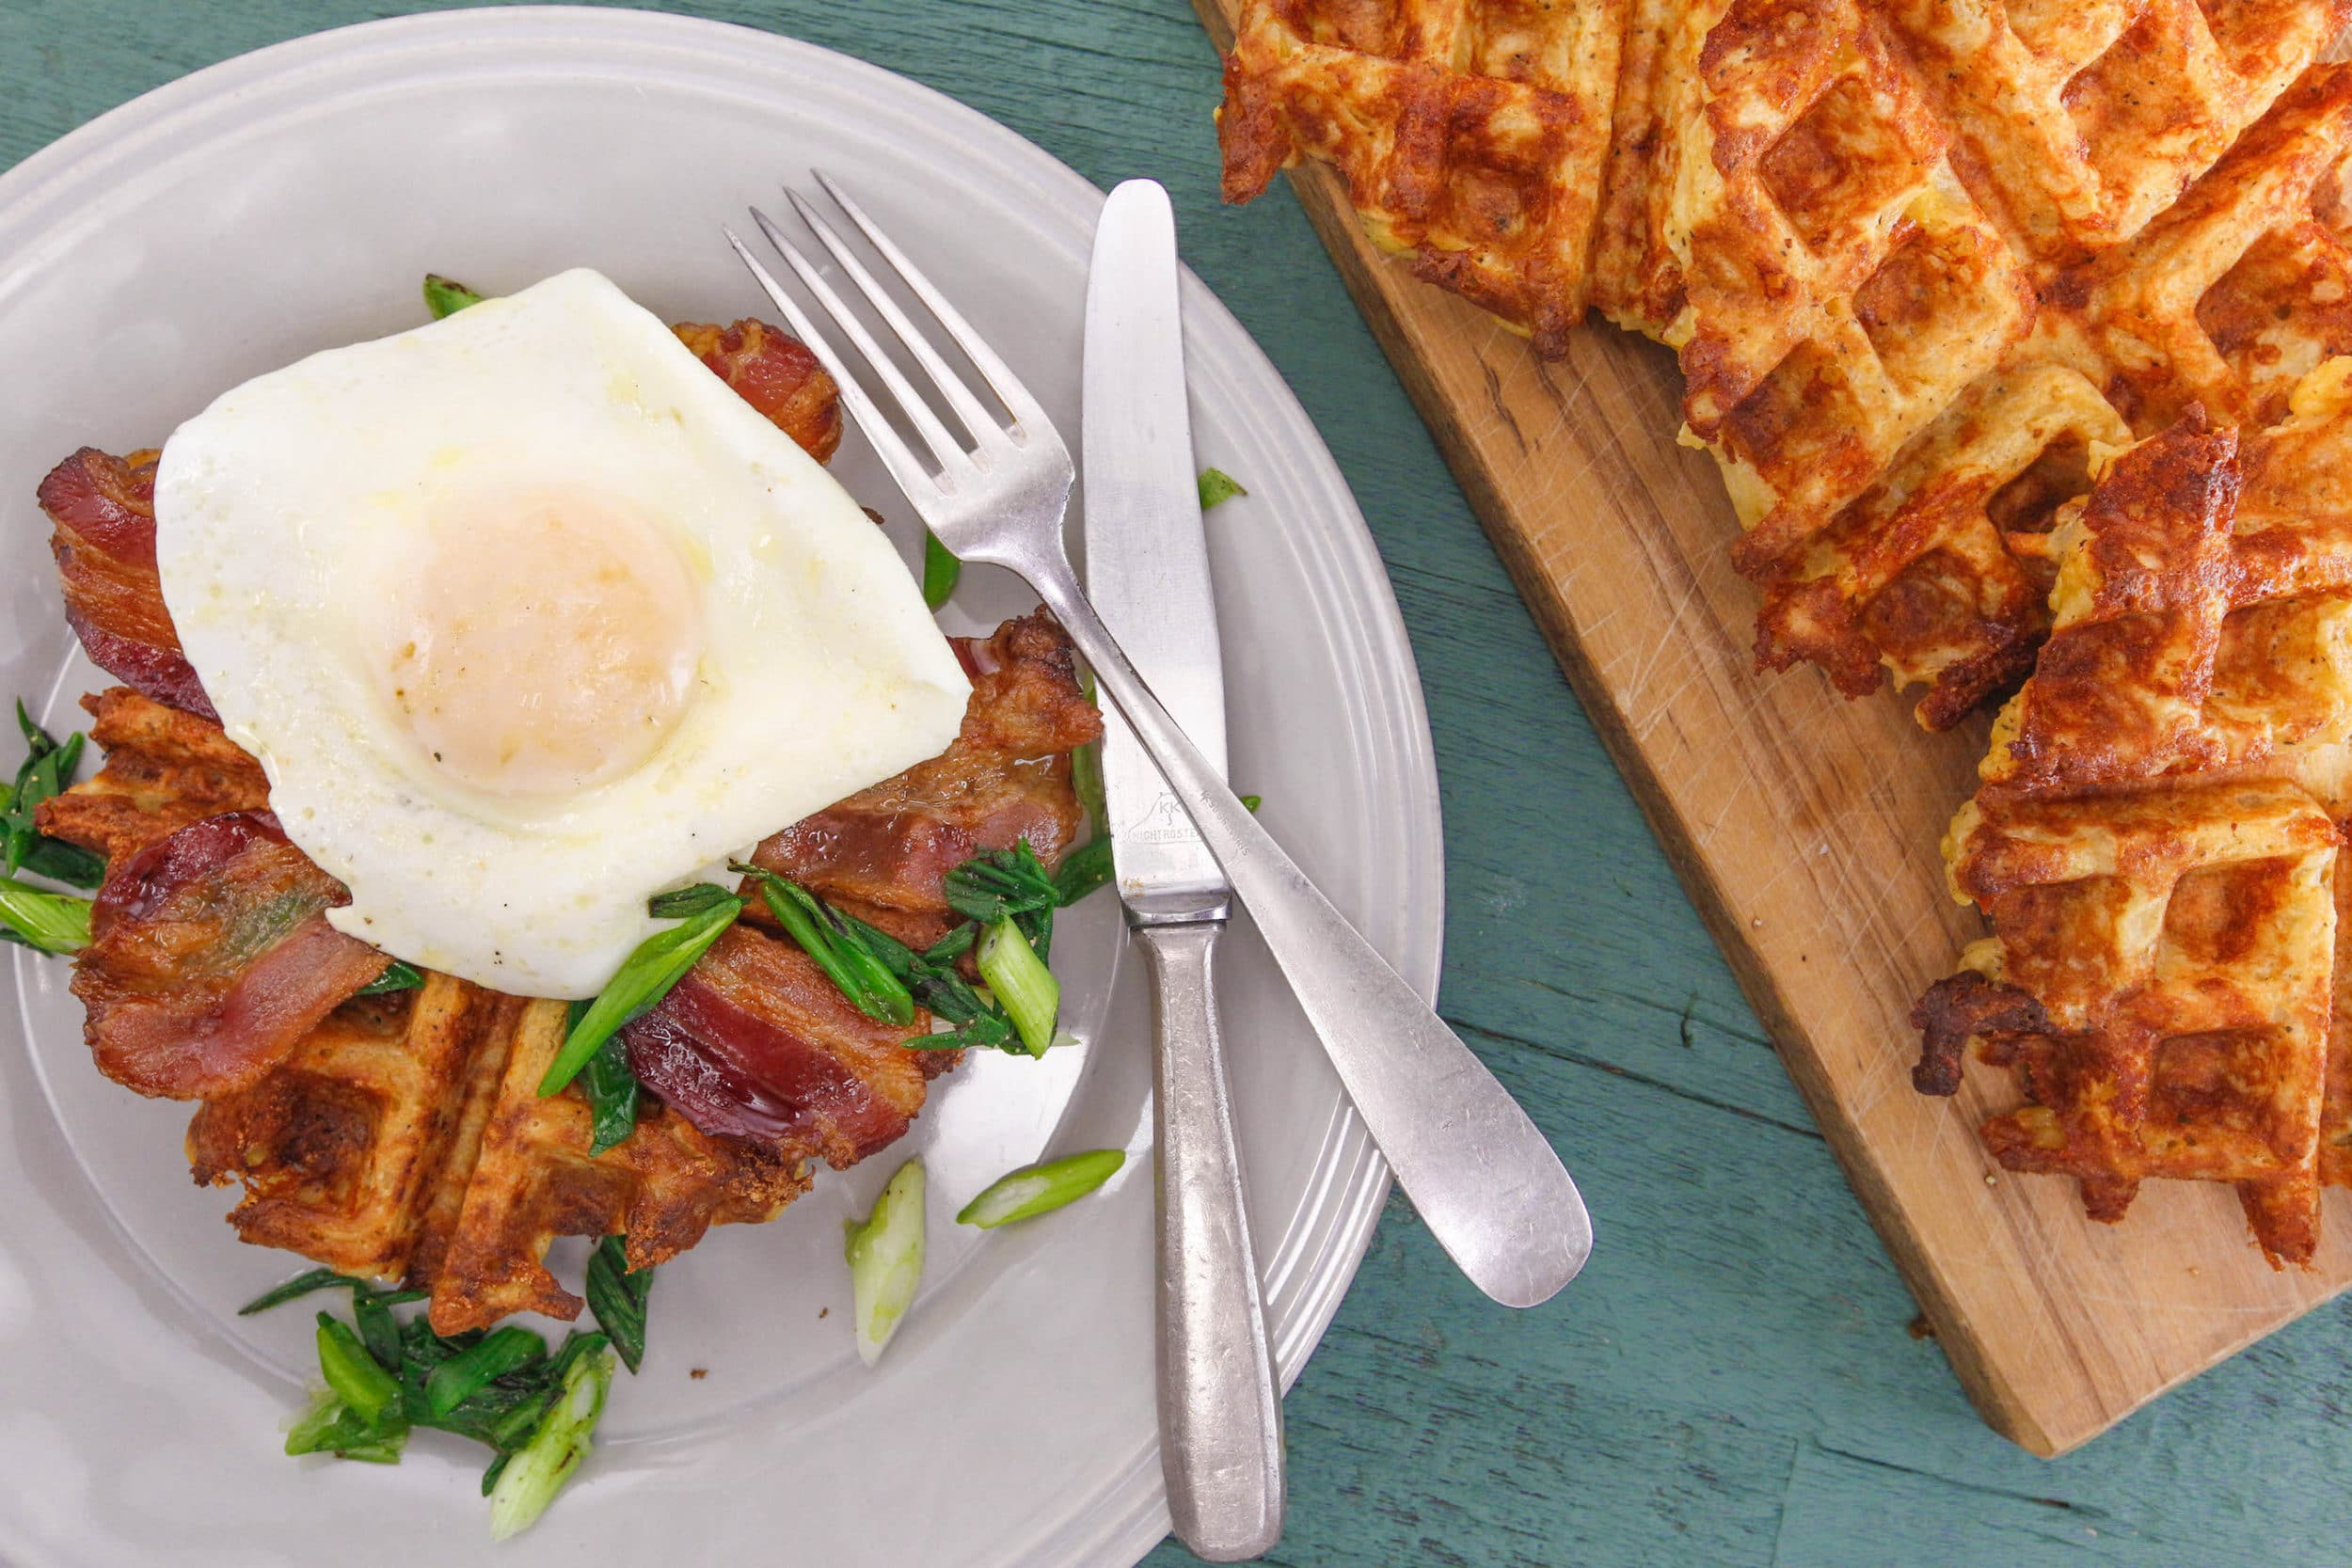 Rachael's Potato Waffles with Bacon, Eggs and Charred Green Onions